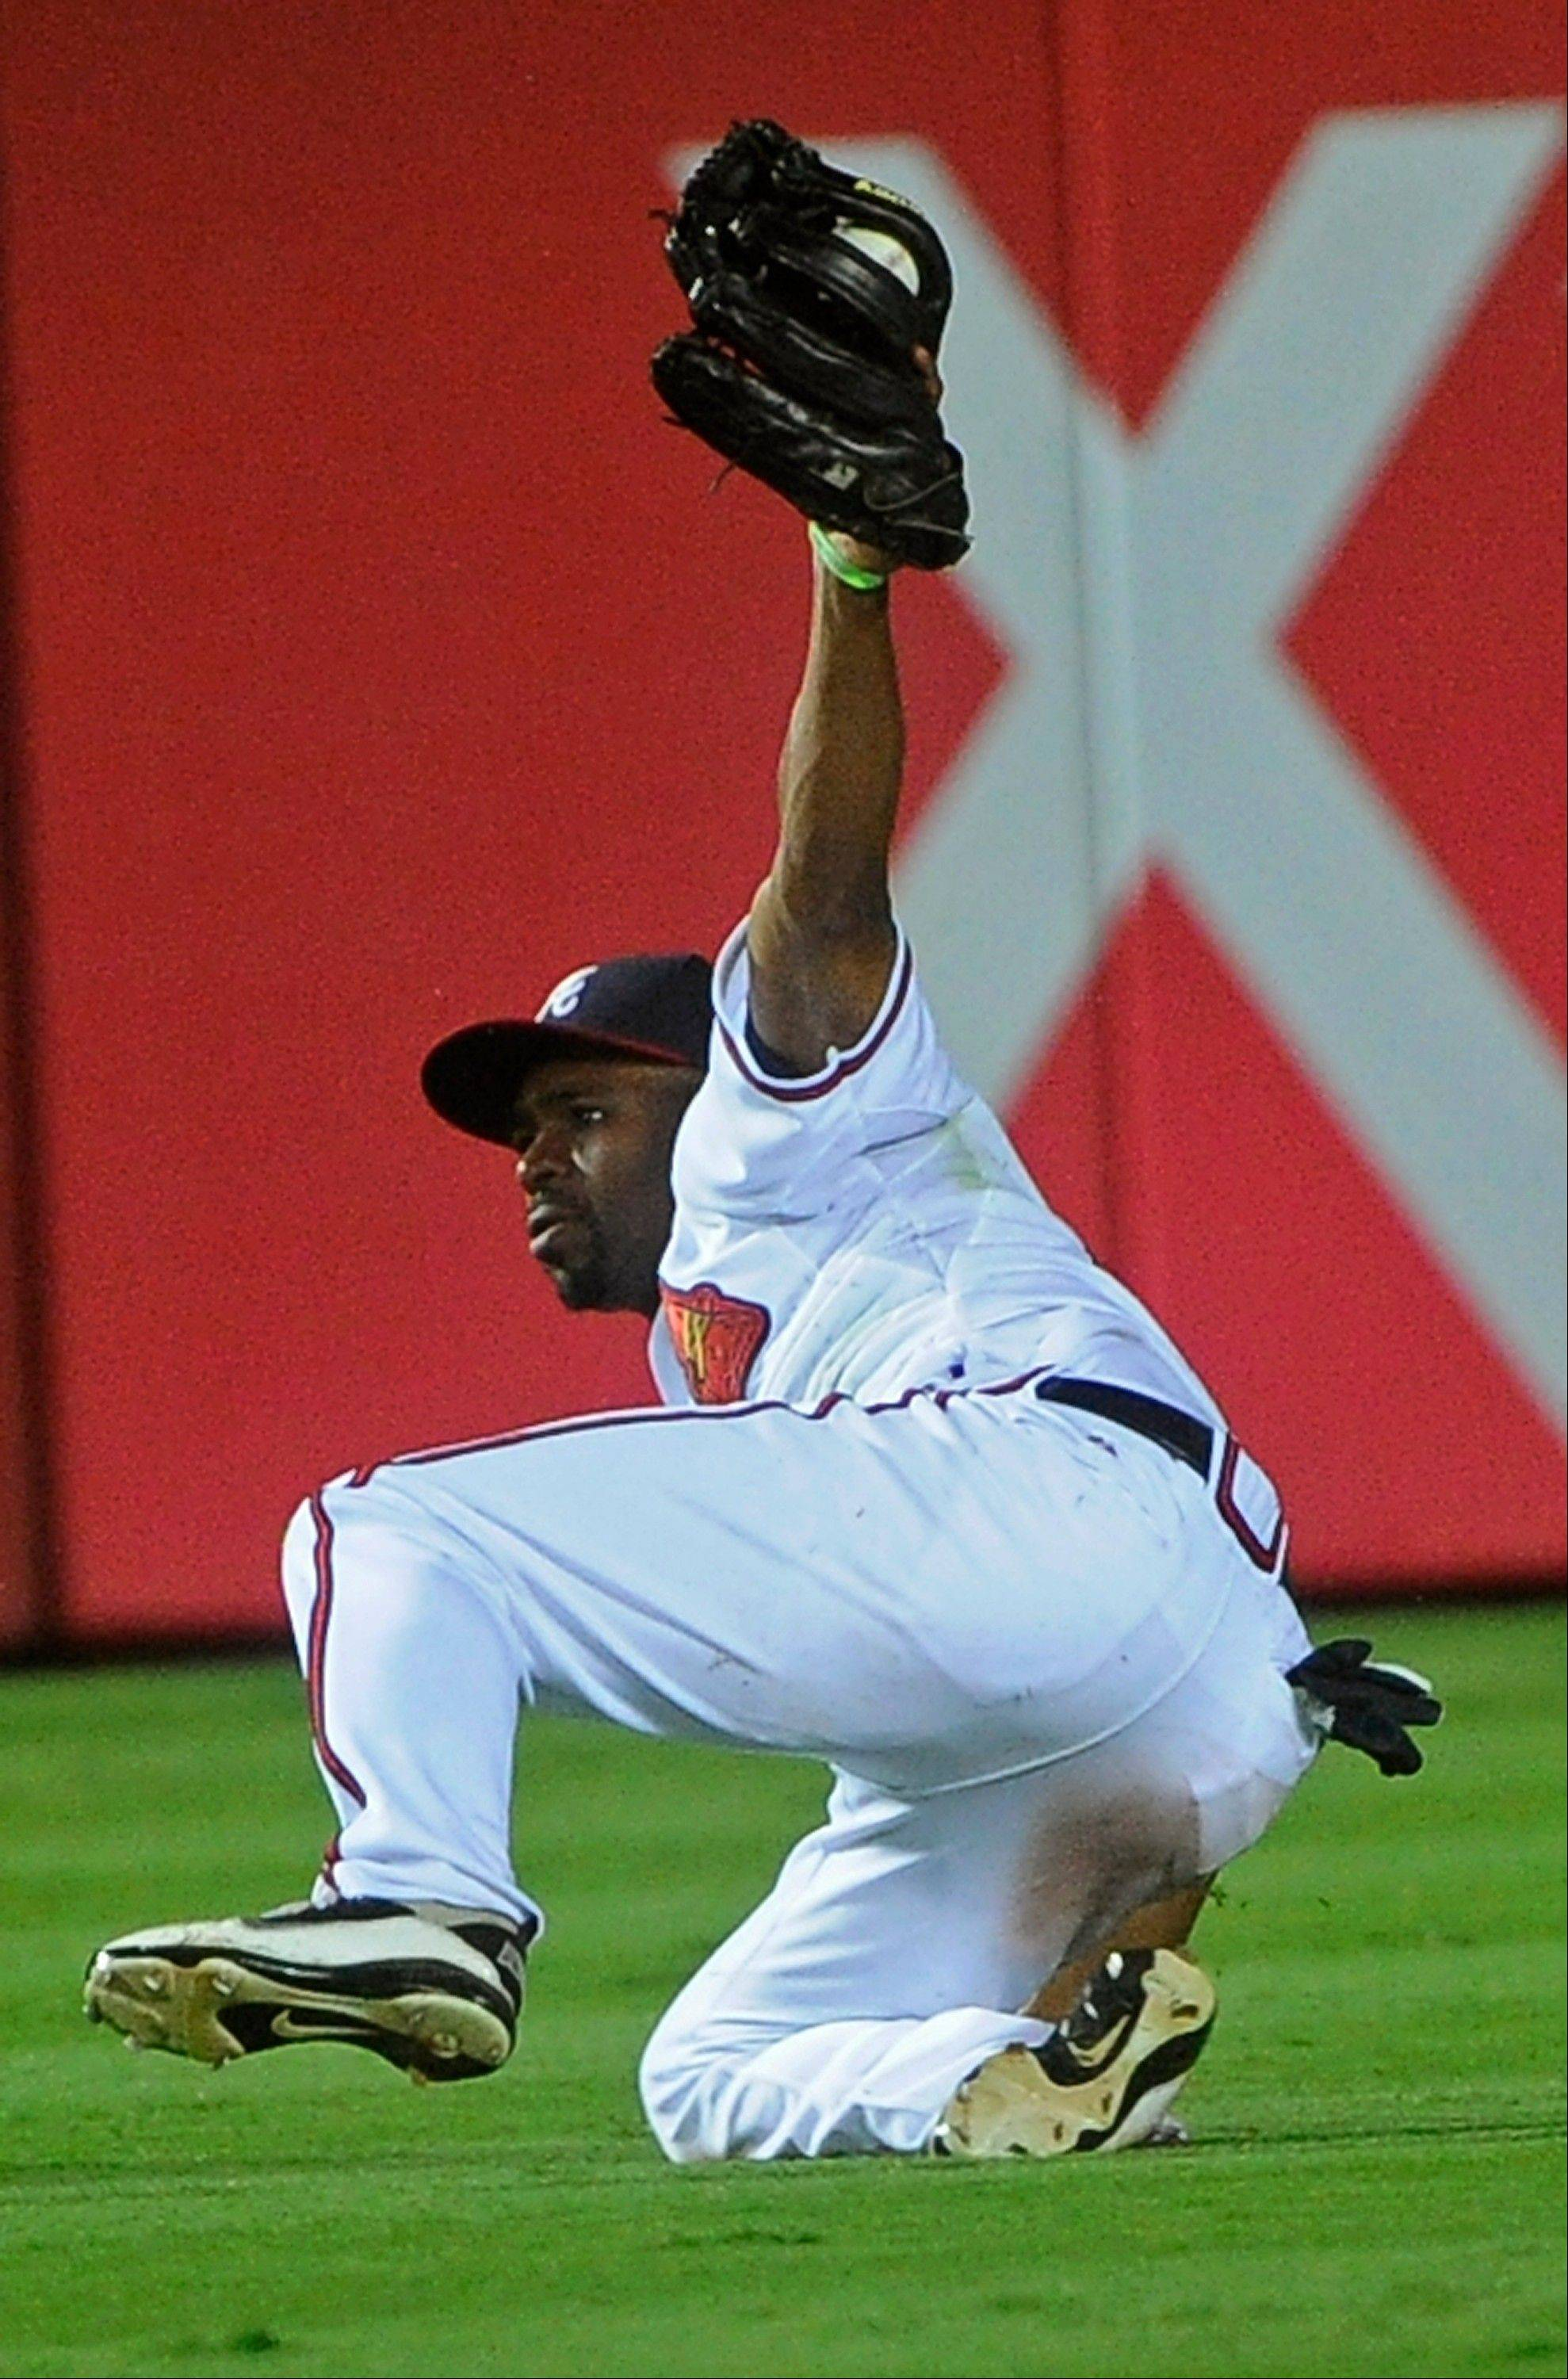 Braves center fielder Michael Bourn comes up with a diving catch on the fly ball hit by the Marlins� Bryan Petersen during the seventh inning Tuesday in Atlanta.